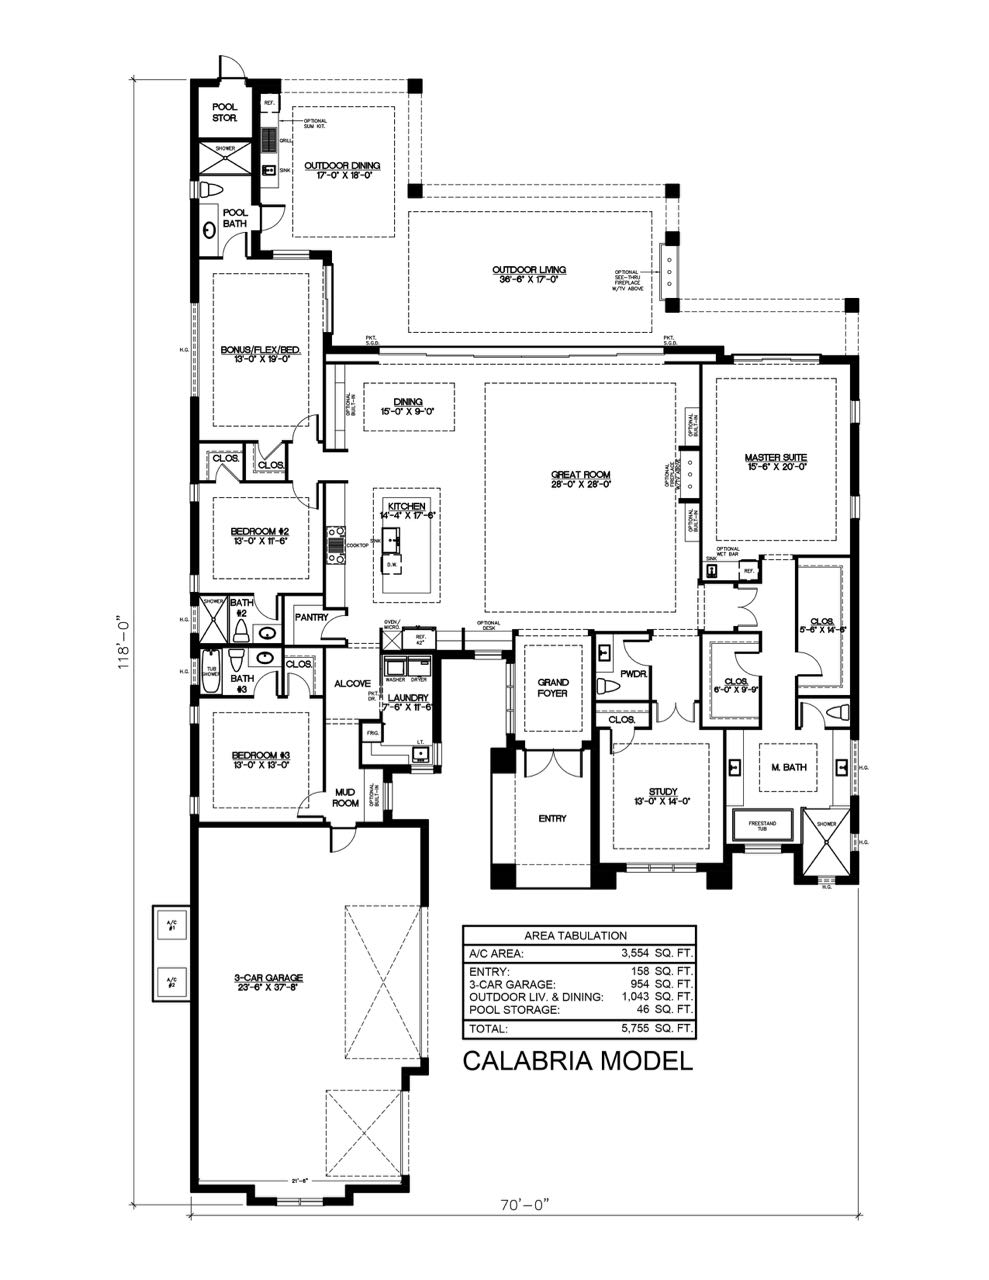 Calabria Floor Plan - Seagate Development Group